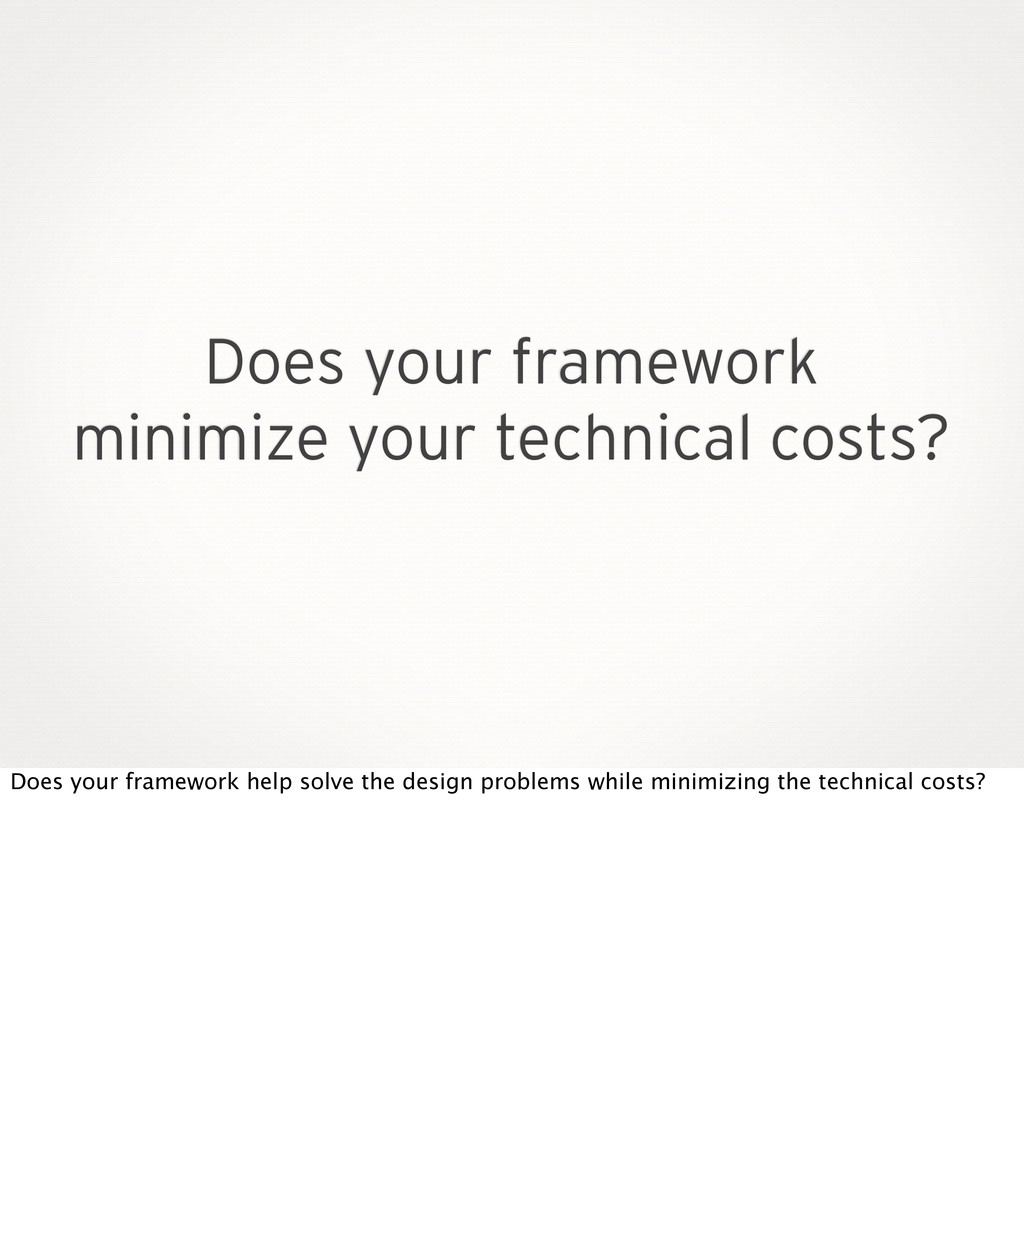 Does your framework minimize your technical cos...